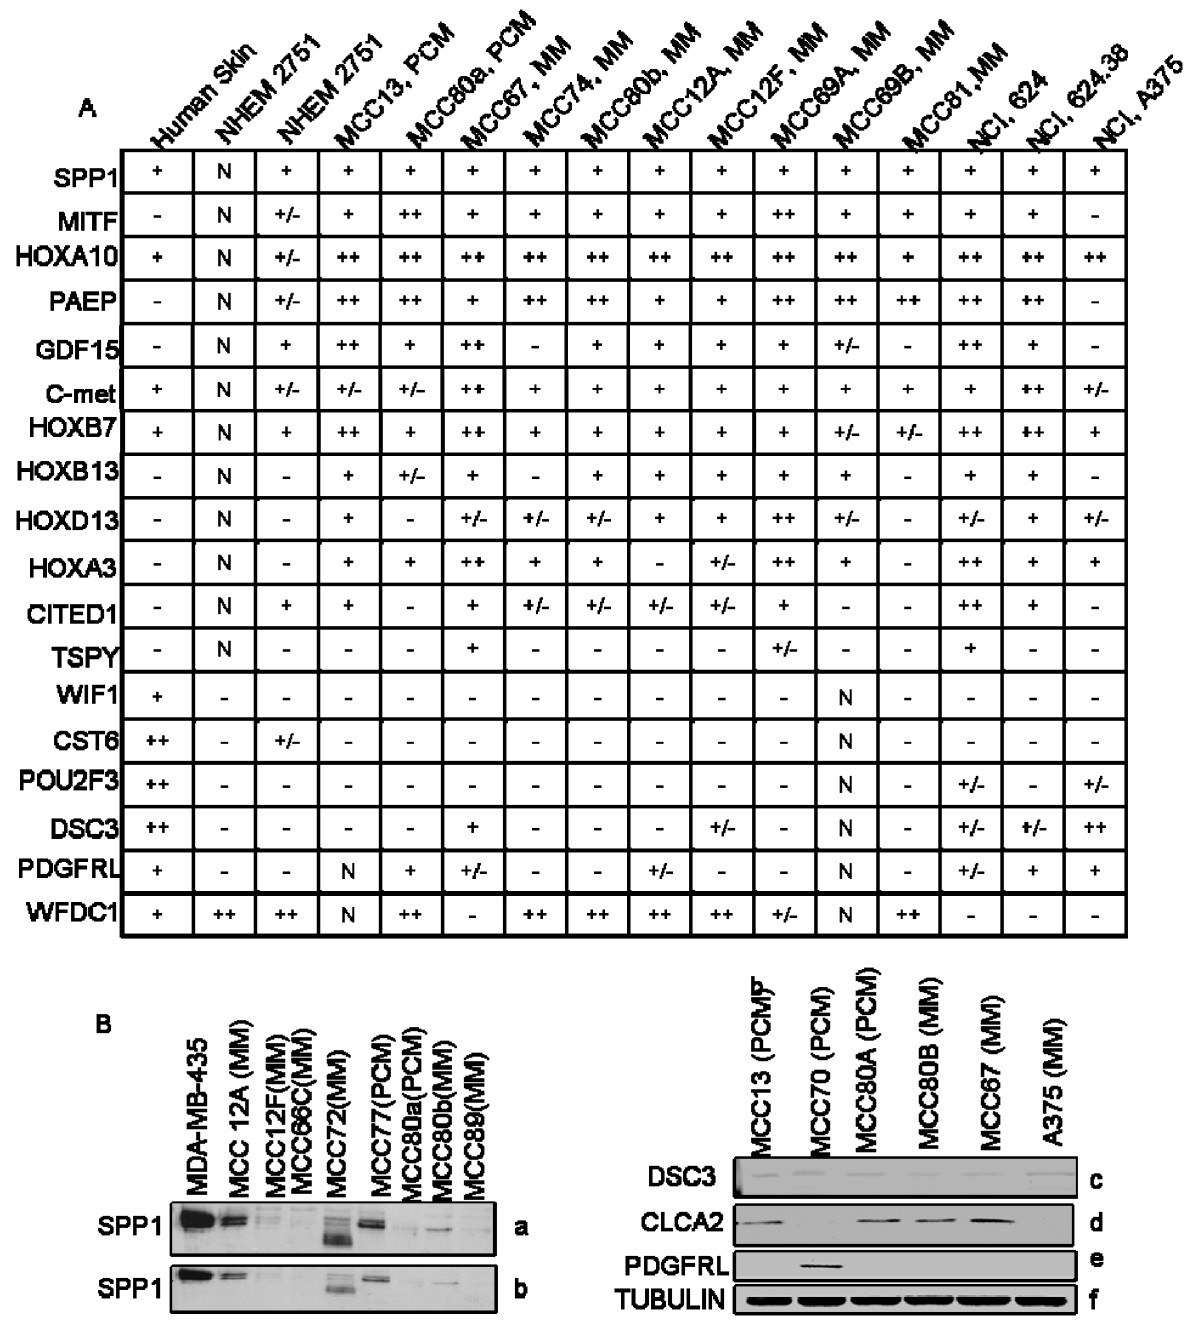 https://static-content.springer.com/image/art%3A10.1186%2F1755-8794-1-13/MediaObjects/12920_2007_Article_13_Fig3_HTML.jpg